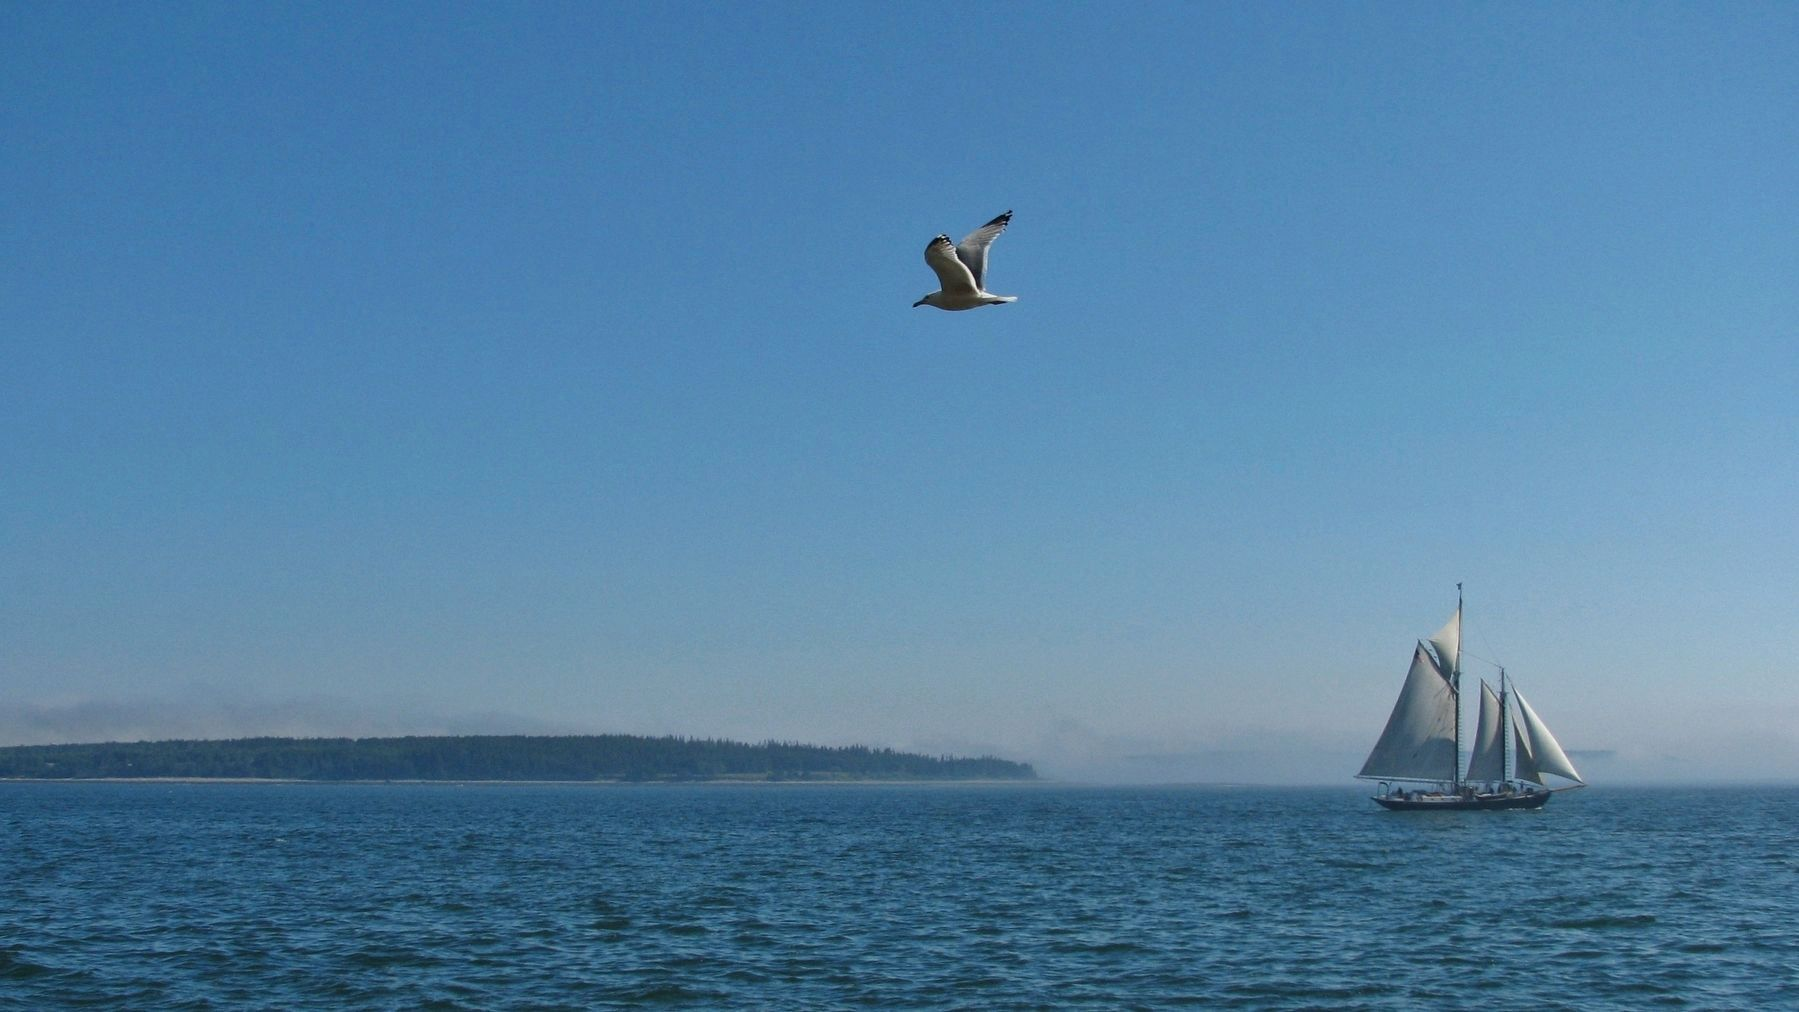 Gull & Schooner(<i><b>view from light station</i></b>) image. Click for full size.